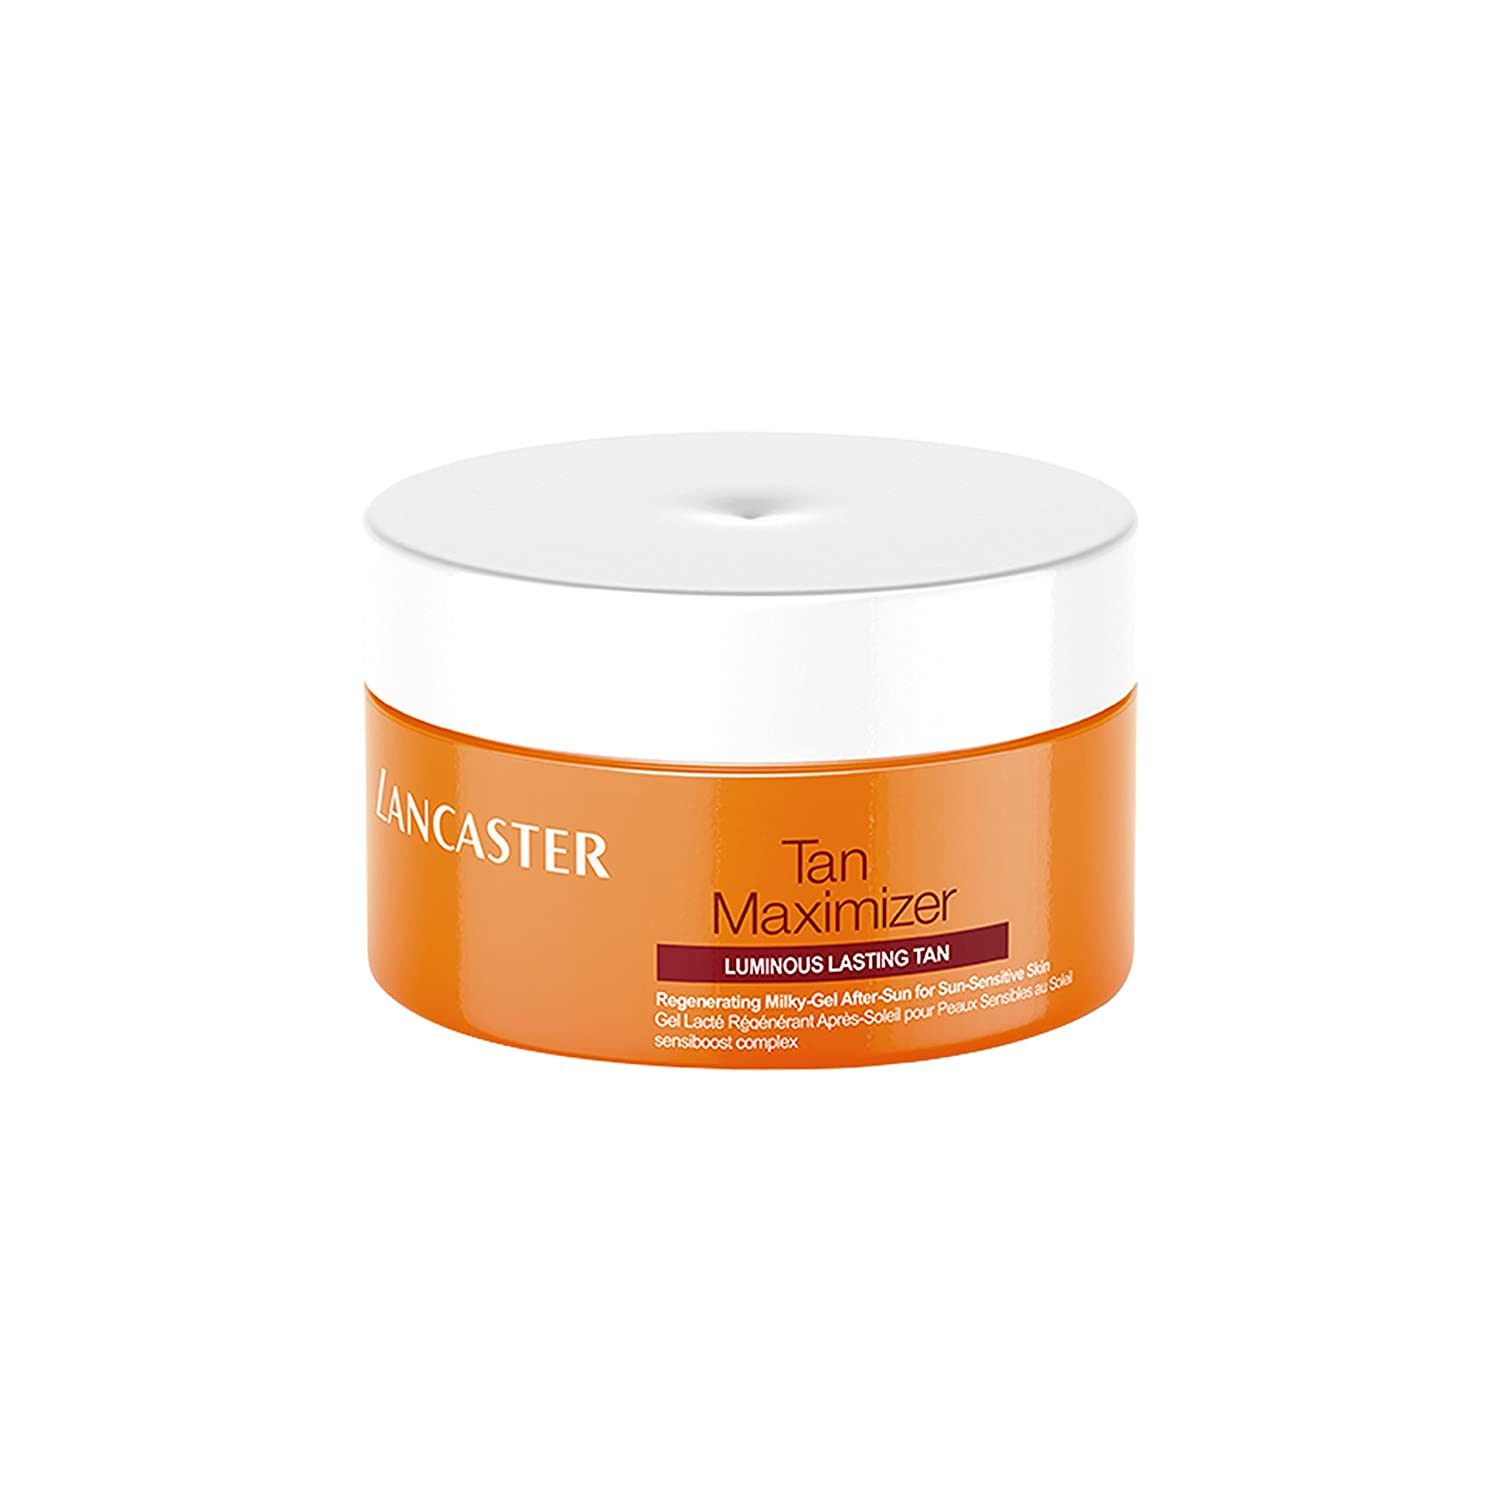 Lancaster Tan Max Regenerating Milky-Gel After-Sun Face and Body, 200 ml Coty 40778086000